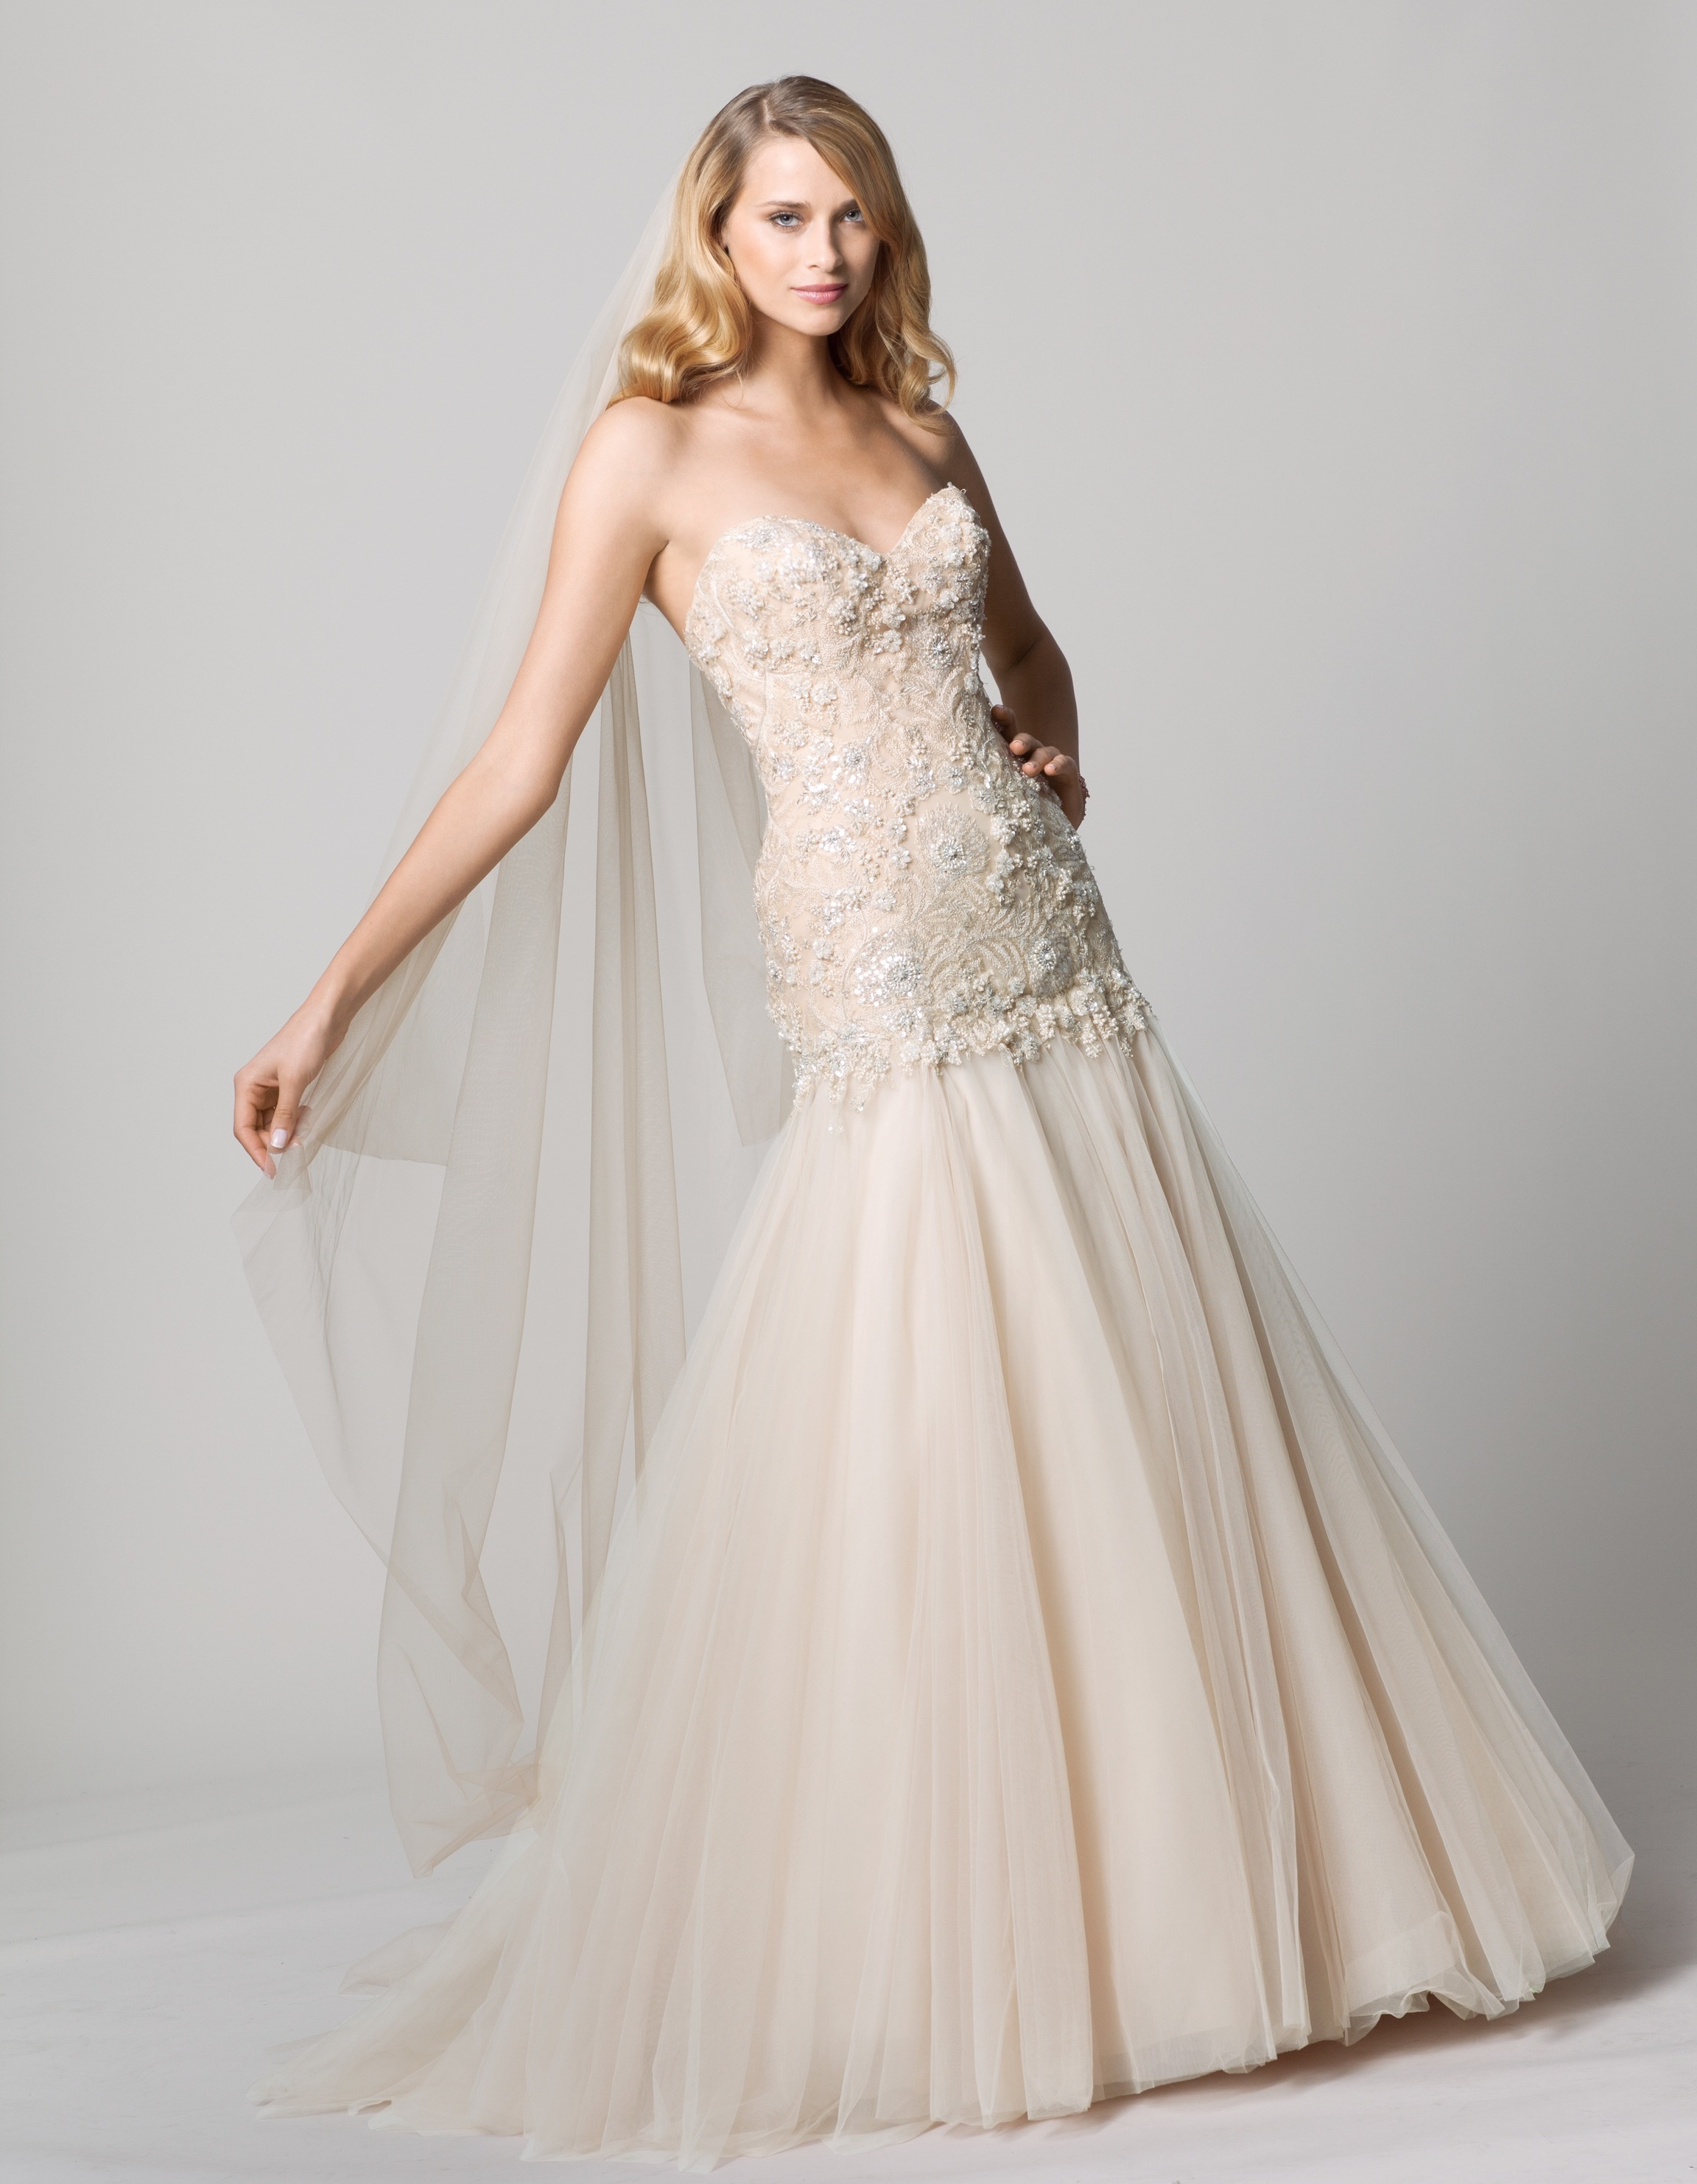 Fall-2012-wedding-dress-wtoo-bridal-gown-by-watters-12.original